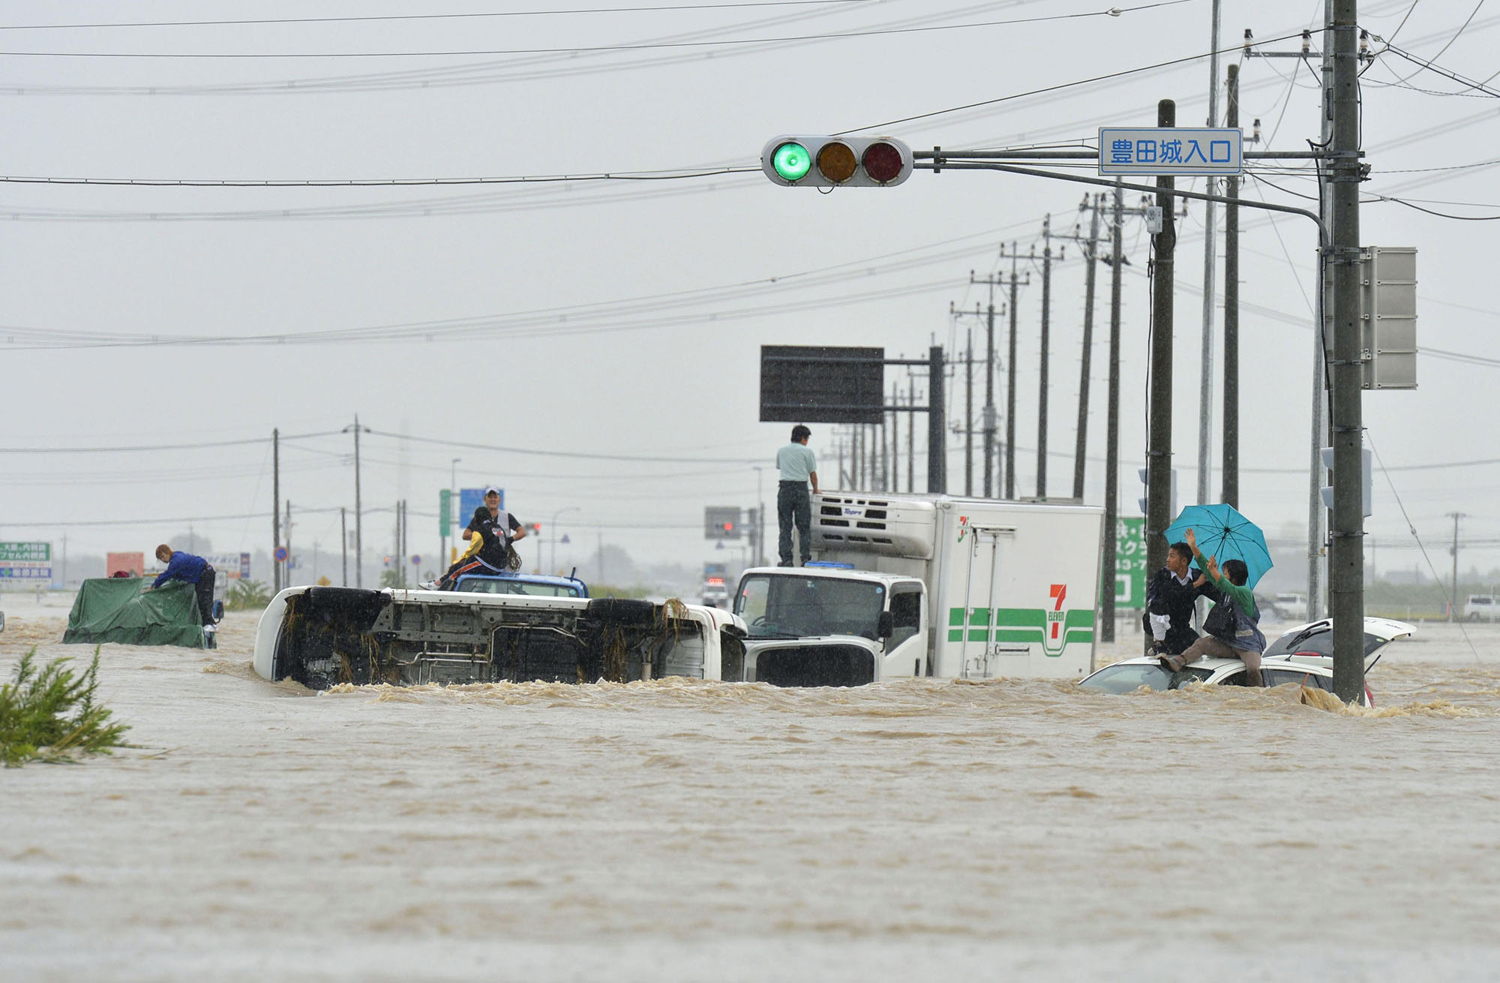 Typhoon Etau Triggers Flooding in Japan 07